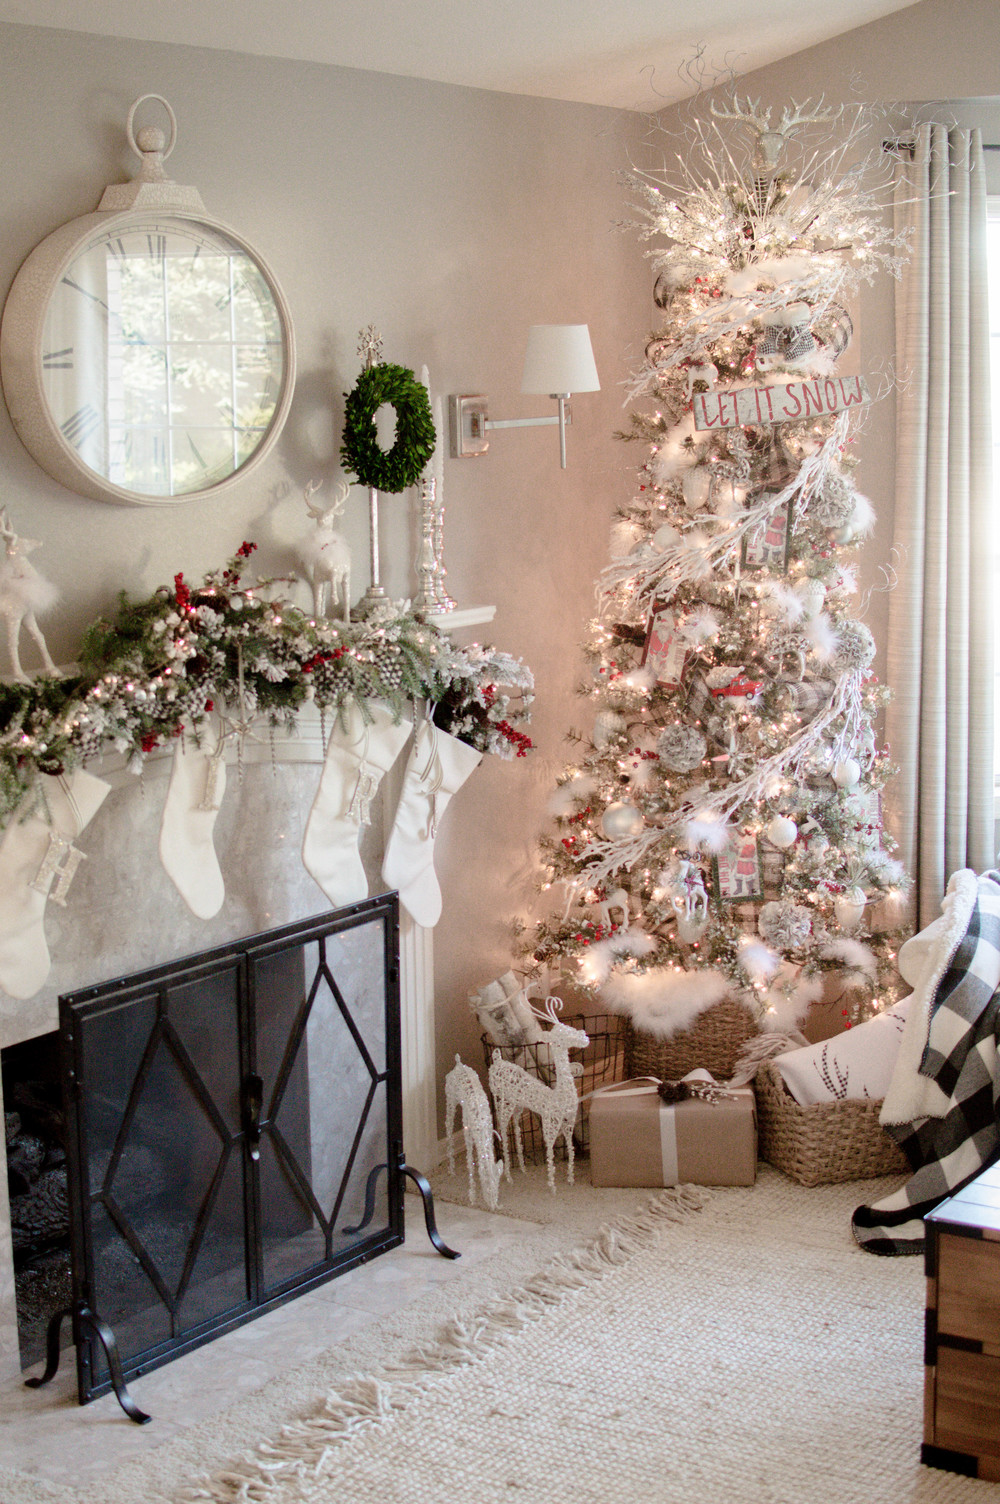 Christmas Living Room Decor and Tree-25-2.jpg